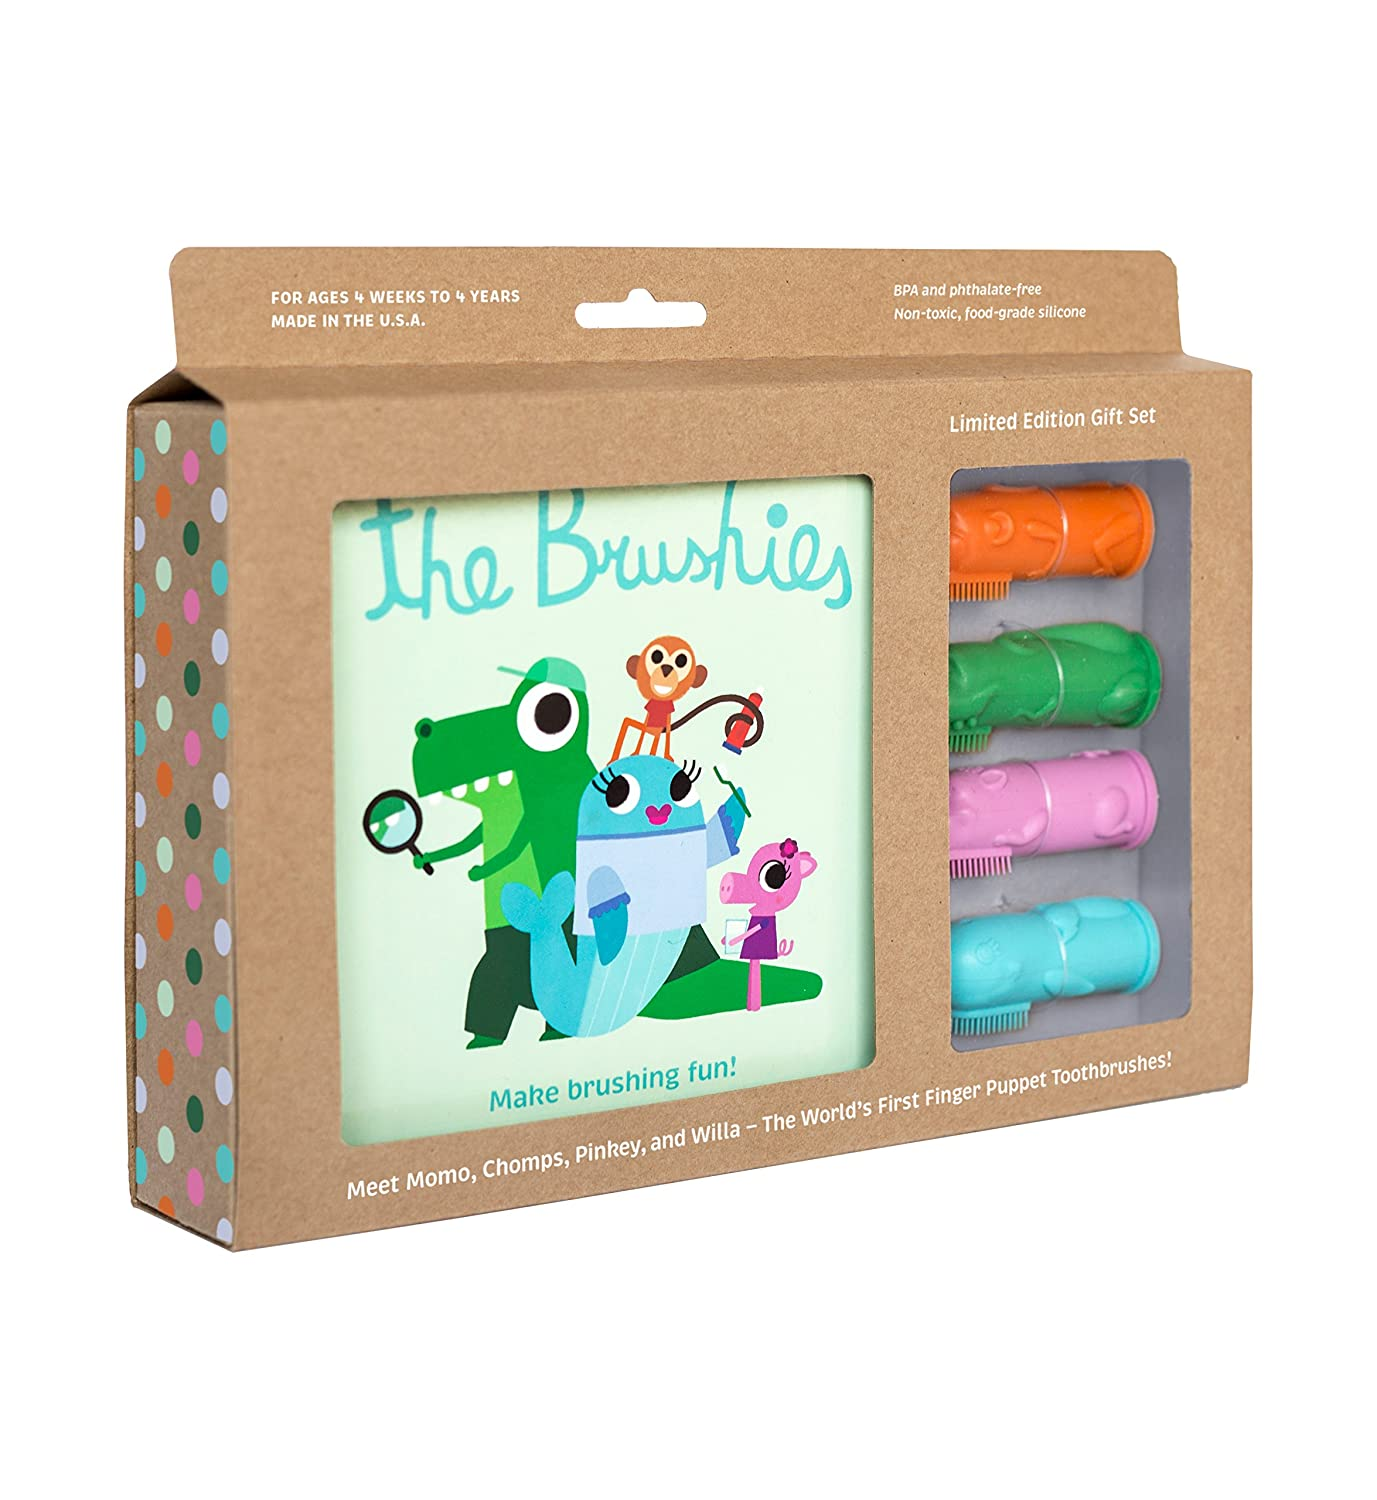 The Brushies - Baby Toothbrush and Storybook Gift Set! BGS111